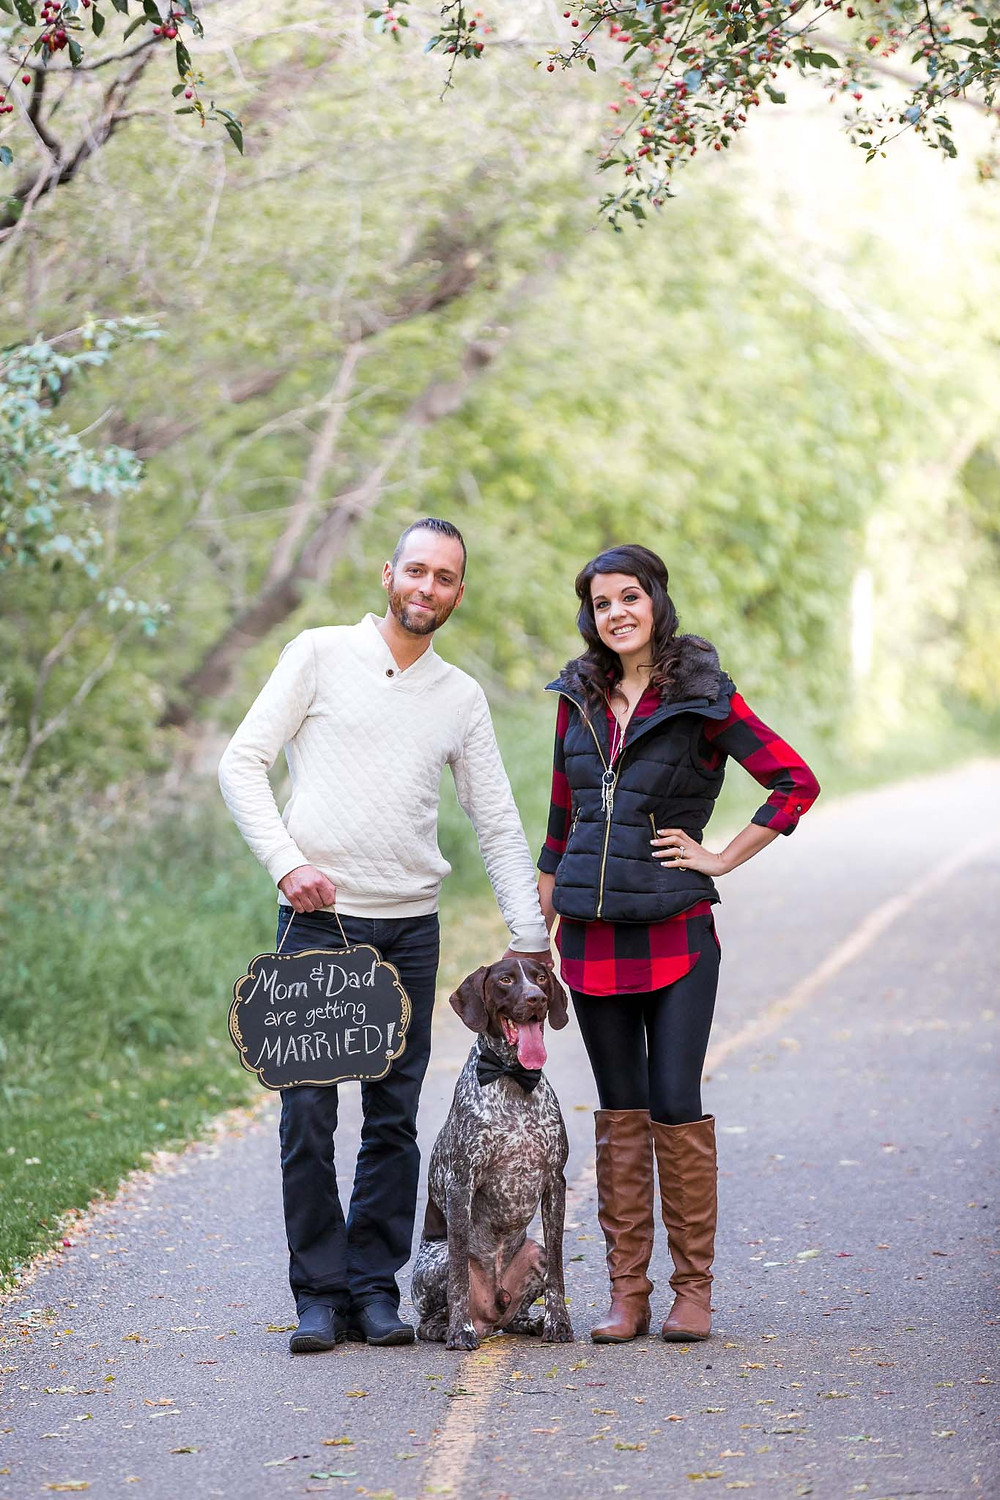 Pre-wedding photos taken with your dog